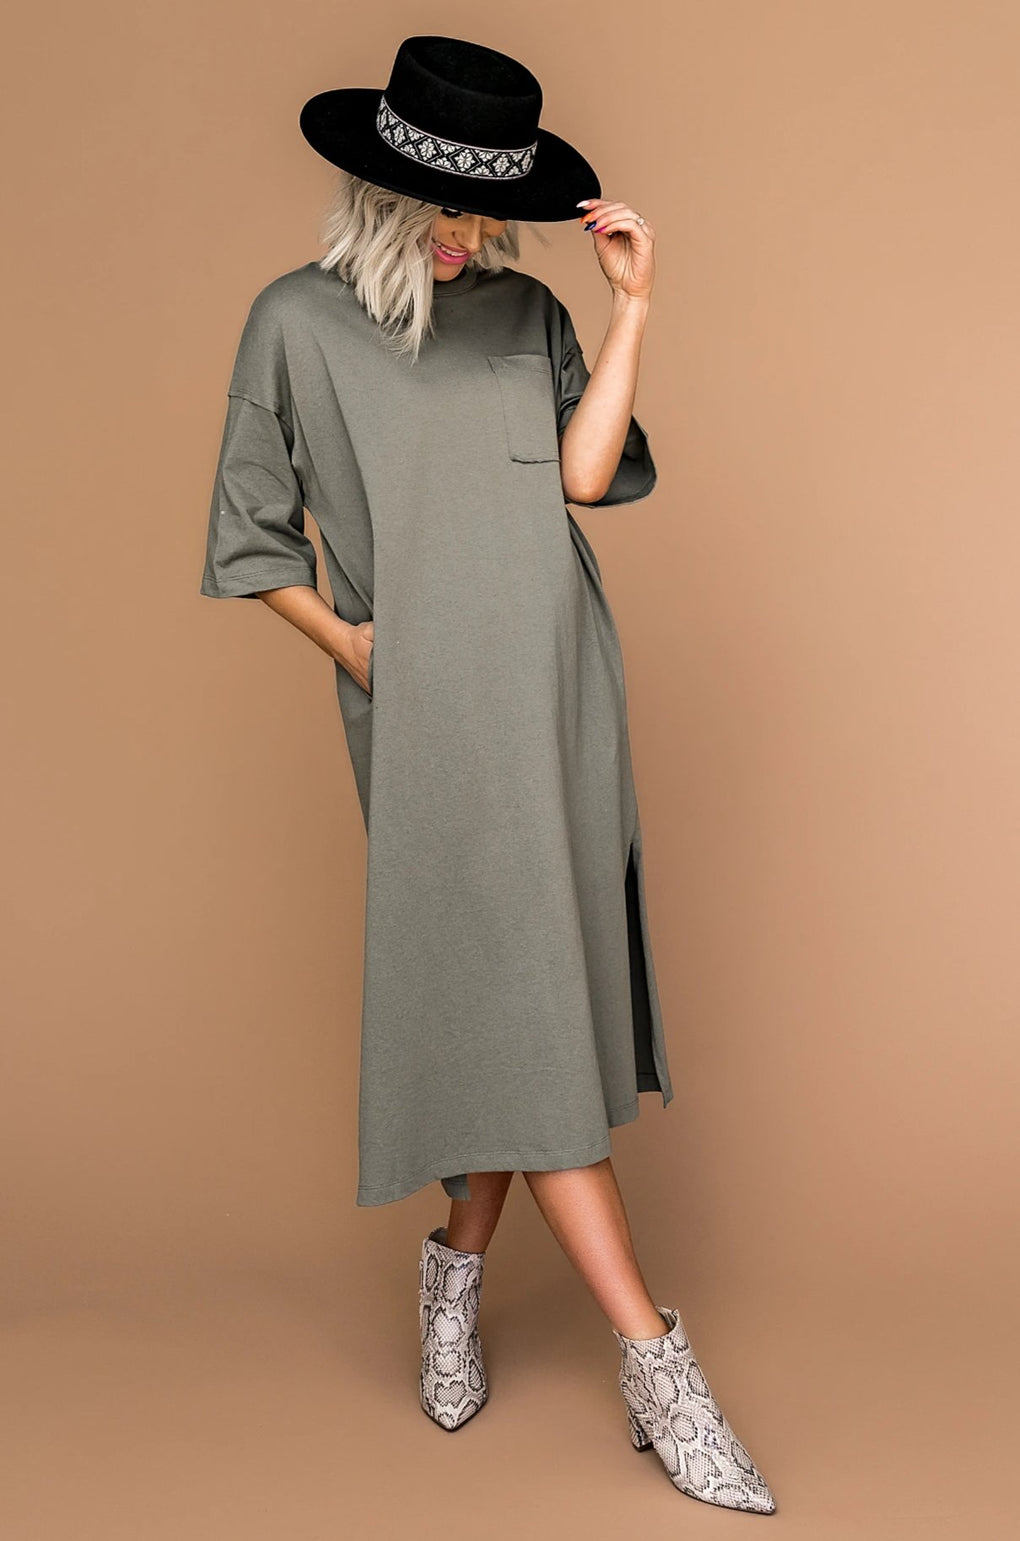 Palo Santo Oversized T-Shirt Dress in Olive